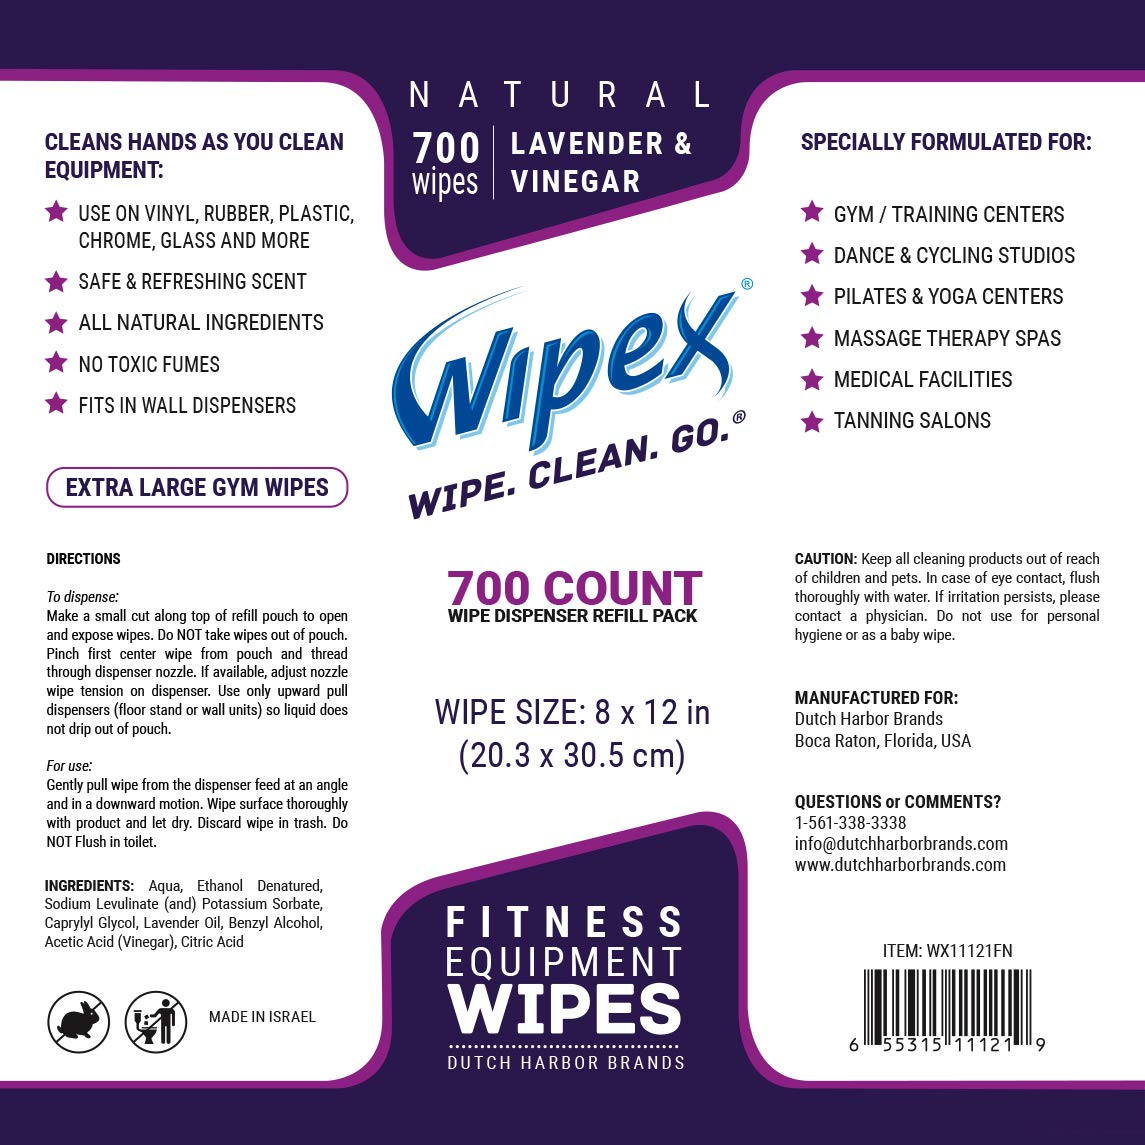 Wipex Gym & Fitness Wipes Refill Pack 700 Large Natural Wipes With Vinegar & Lavender Oil (1 Refill) by Wipex (Image #6)